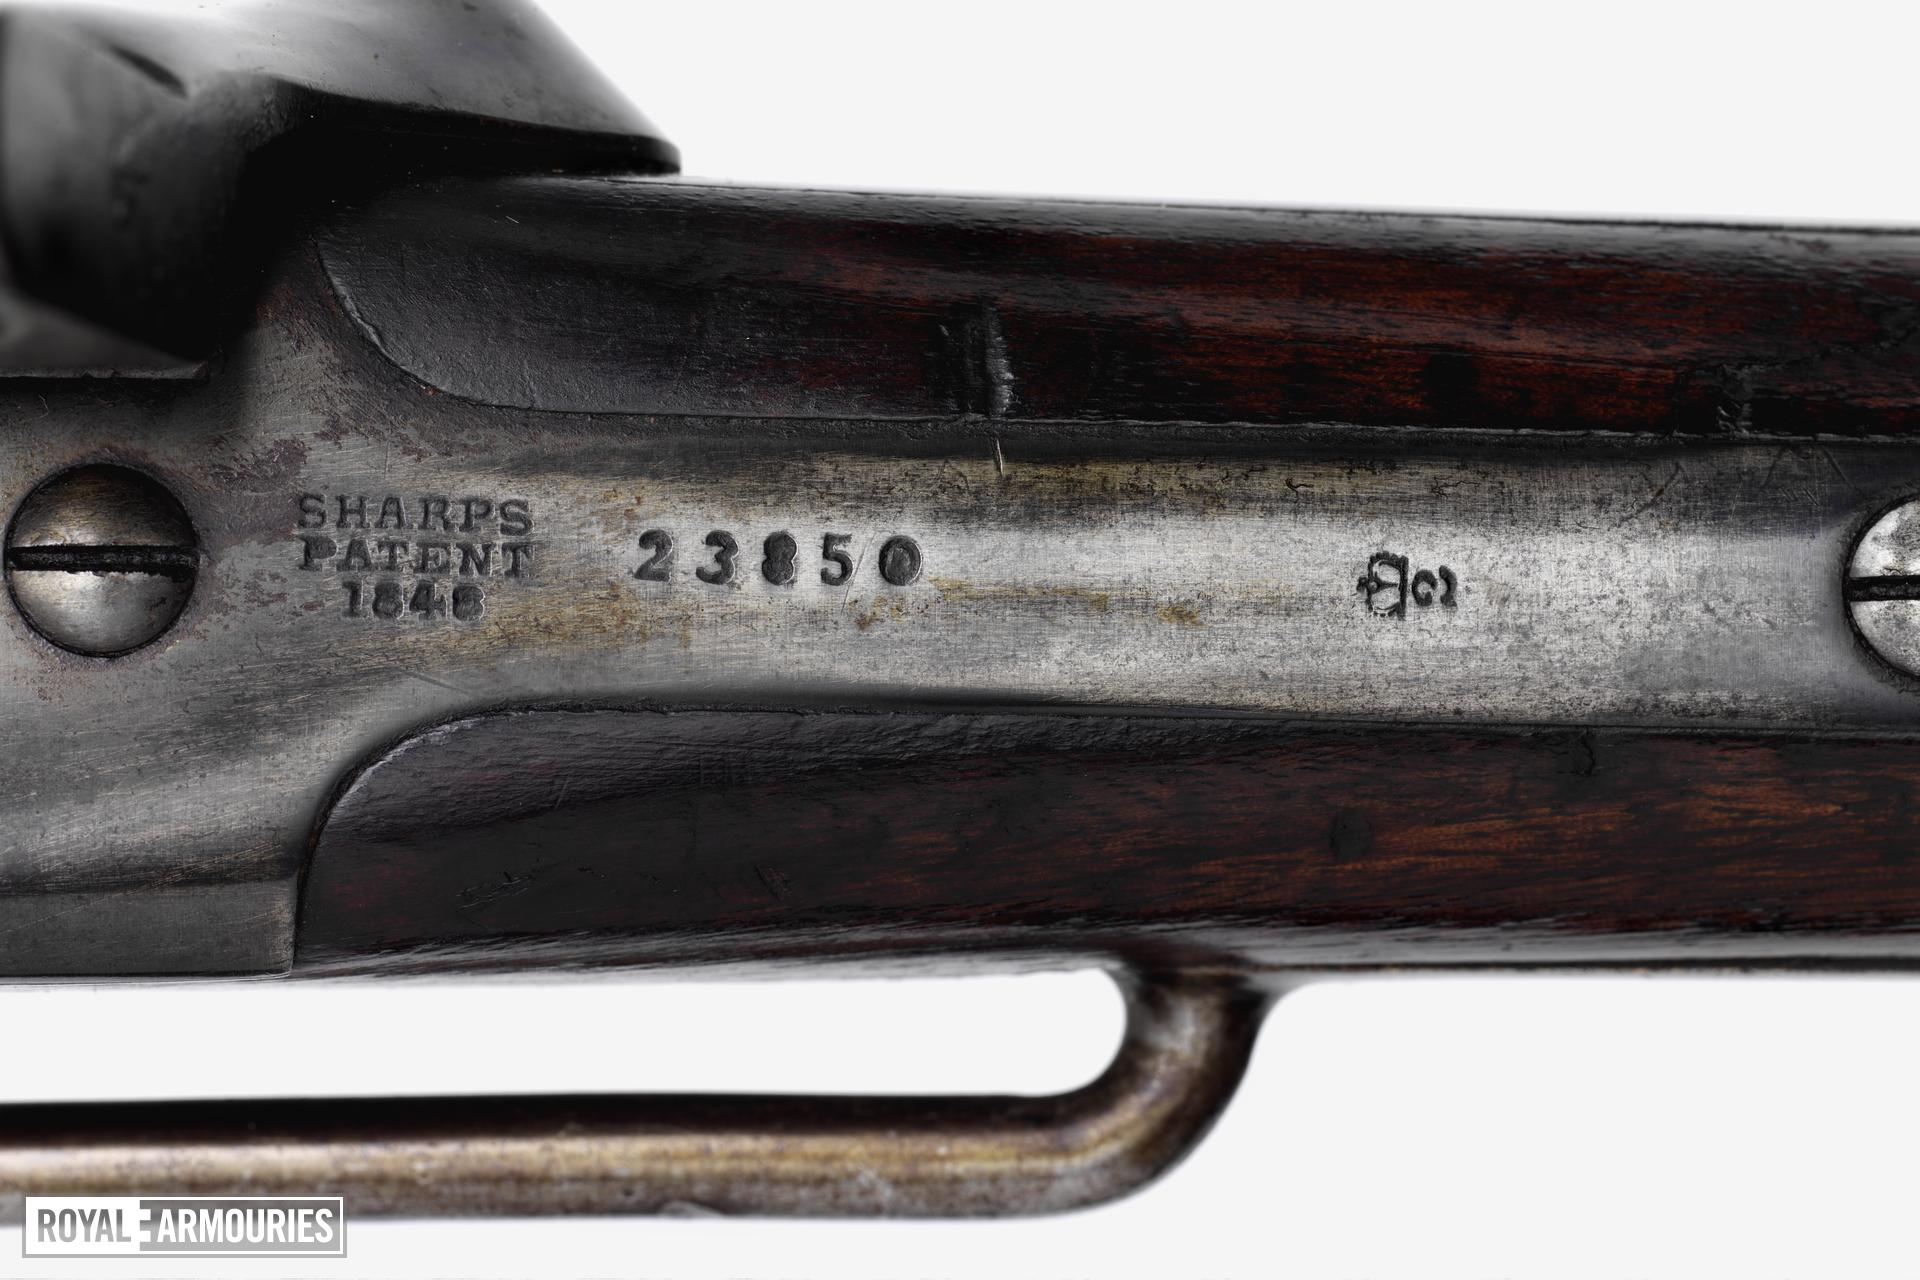 Percussion breech-loading carbine - Sharps Carbine By Sharps Rifle Manufacturing Company of Hartford